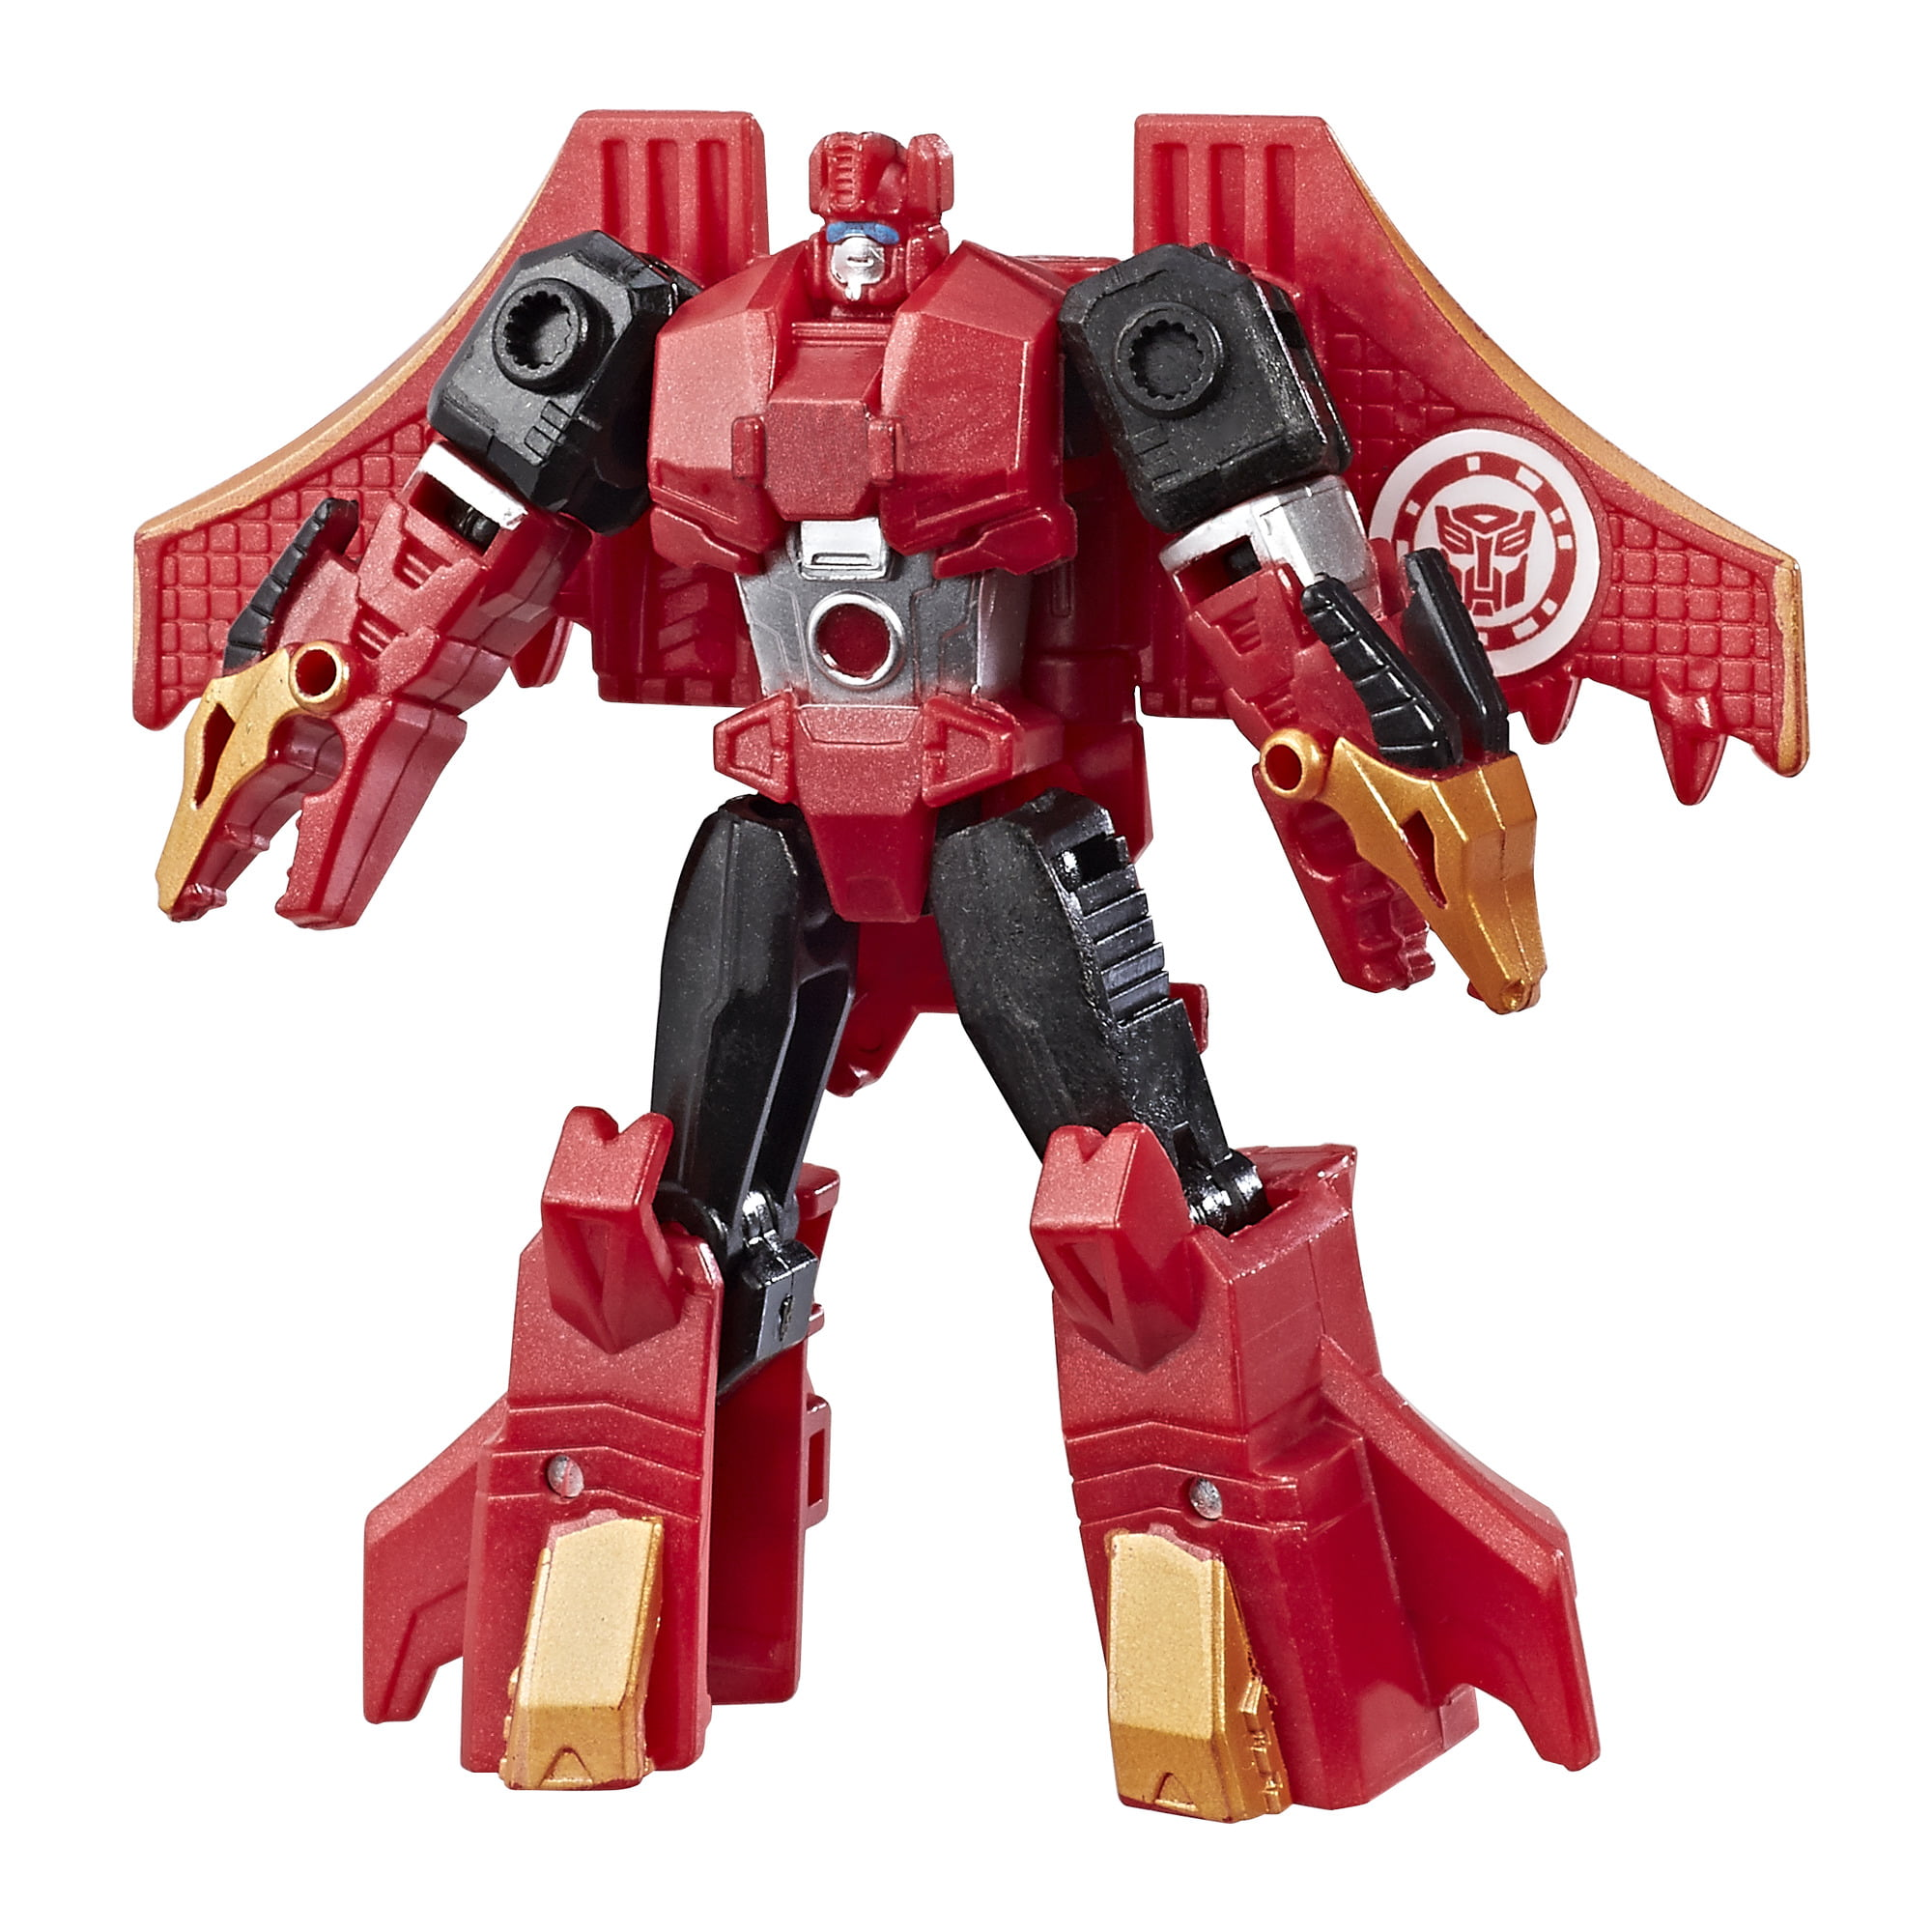 Transformers: Robots in Disguise Combiner Force Legion Autobot Twinferno by Hasbro